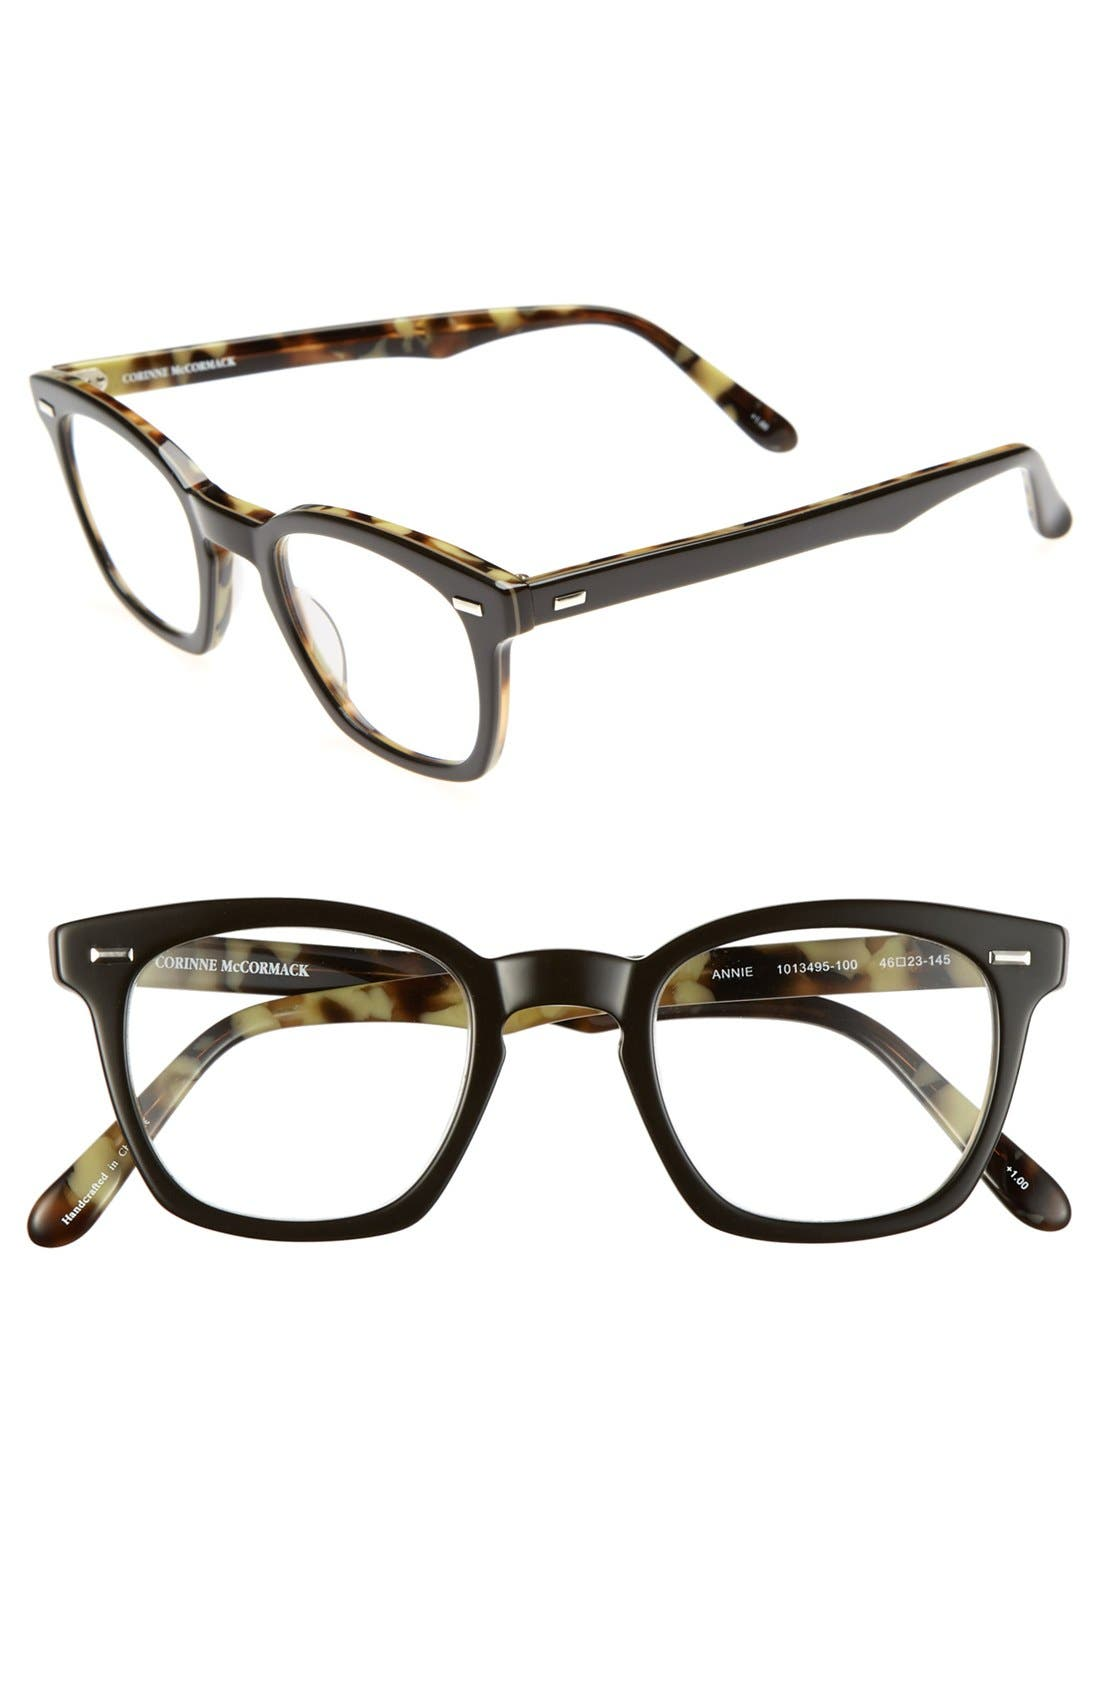 Alternate Image 1 Selected - Corinne McCormack 'Annie' 46mm Reading Glasses